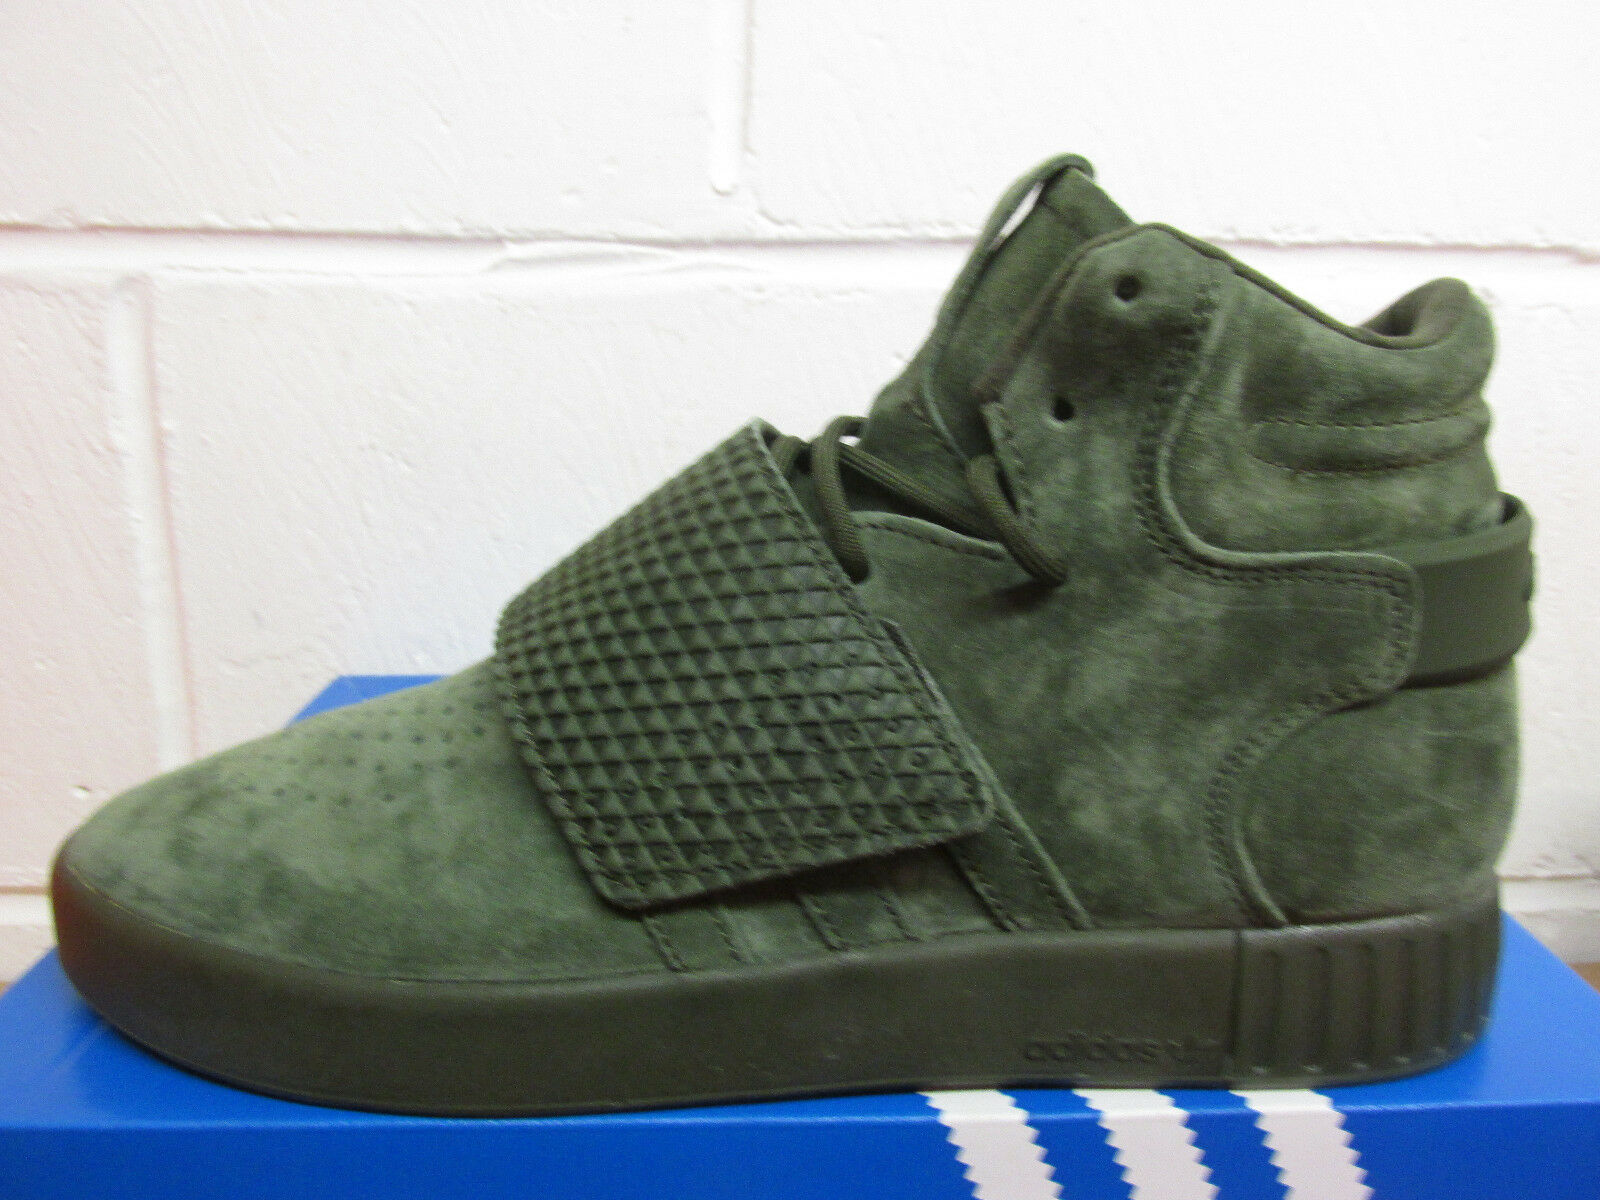 Adidas Originals Tubular Invader Strap Strap Strap Hi Top Trainers BB1171 Sneakers Shoes 967bfb